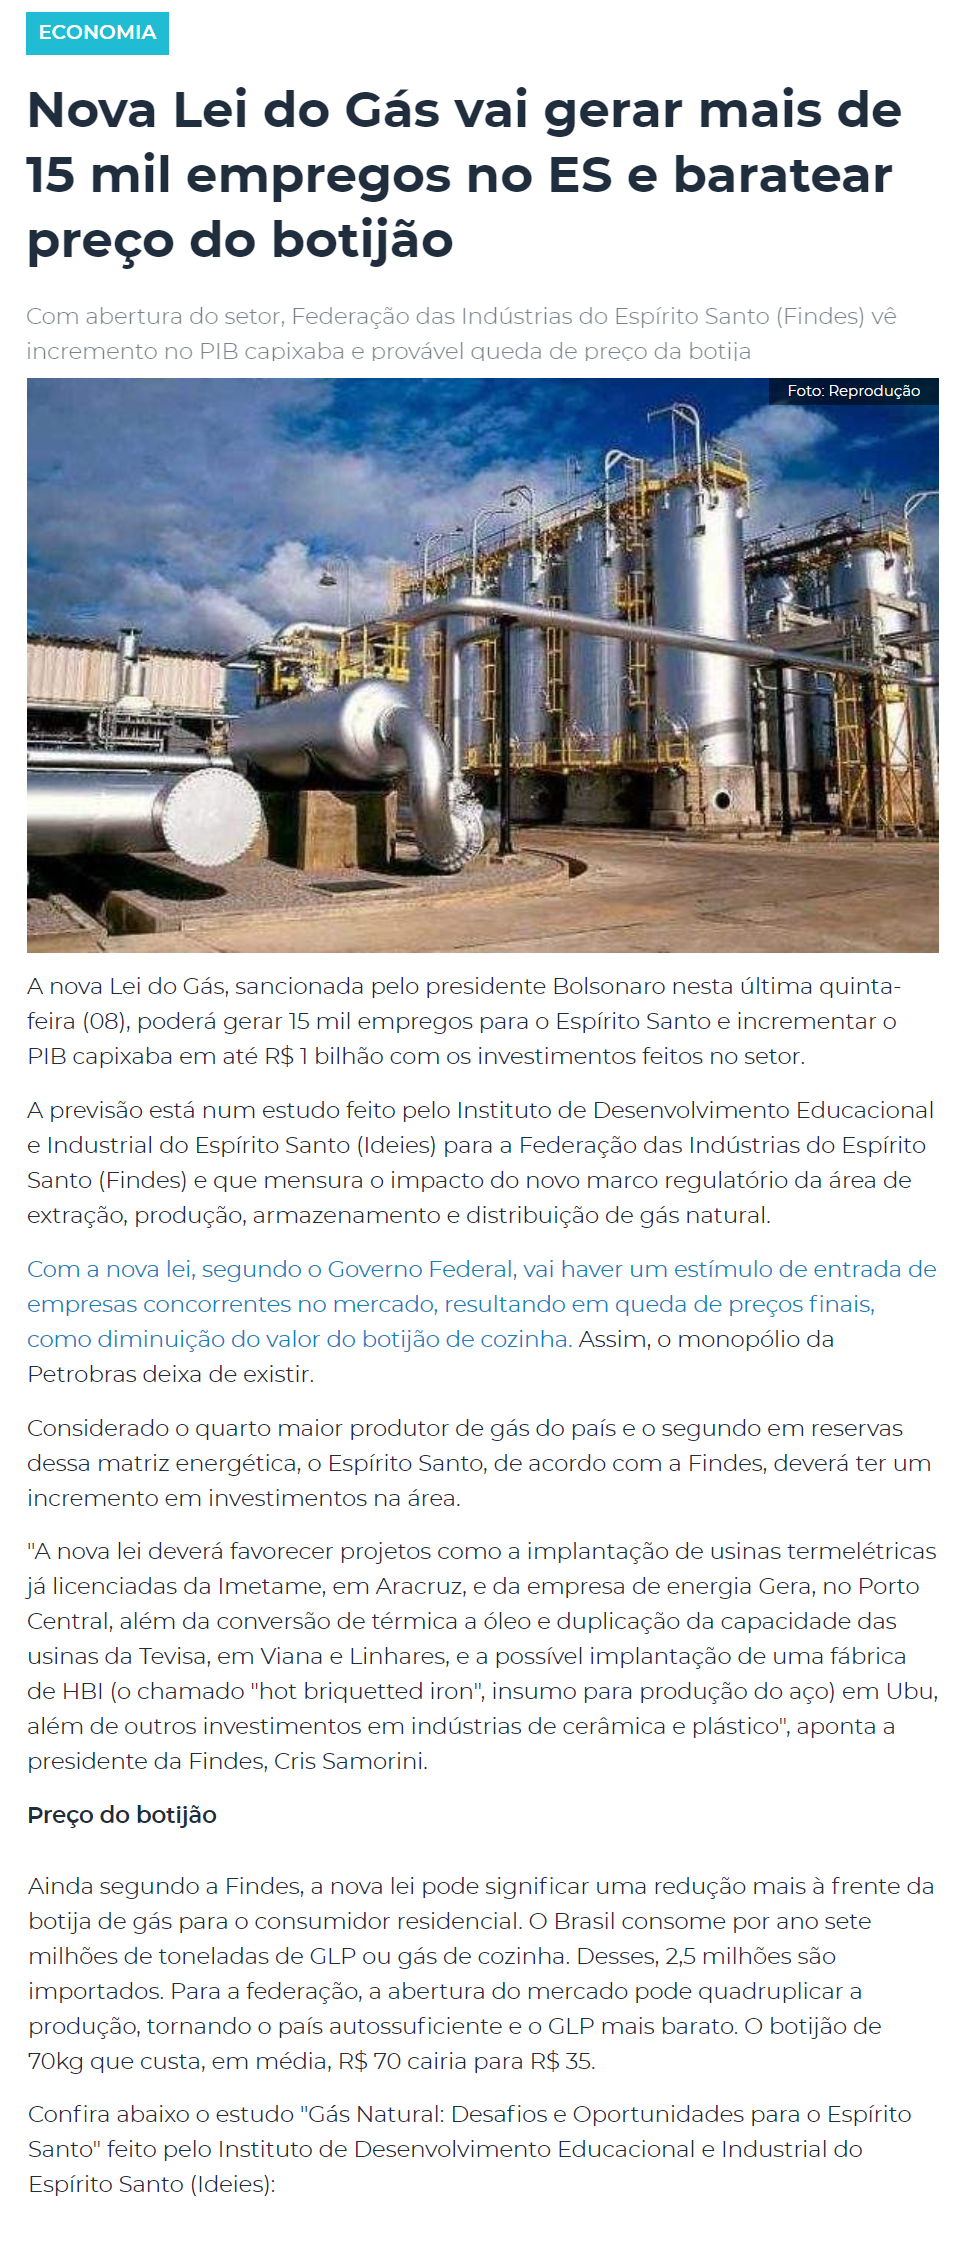 screencapture-folhavitoria-br-economia-noticia-04-2021-nova-lei-do-gas-vai-gerar-mais-de-15-mil-empregos-no-es-e-baratear-preco-do-botijao-2021-04-23-13_48_50